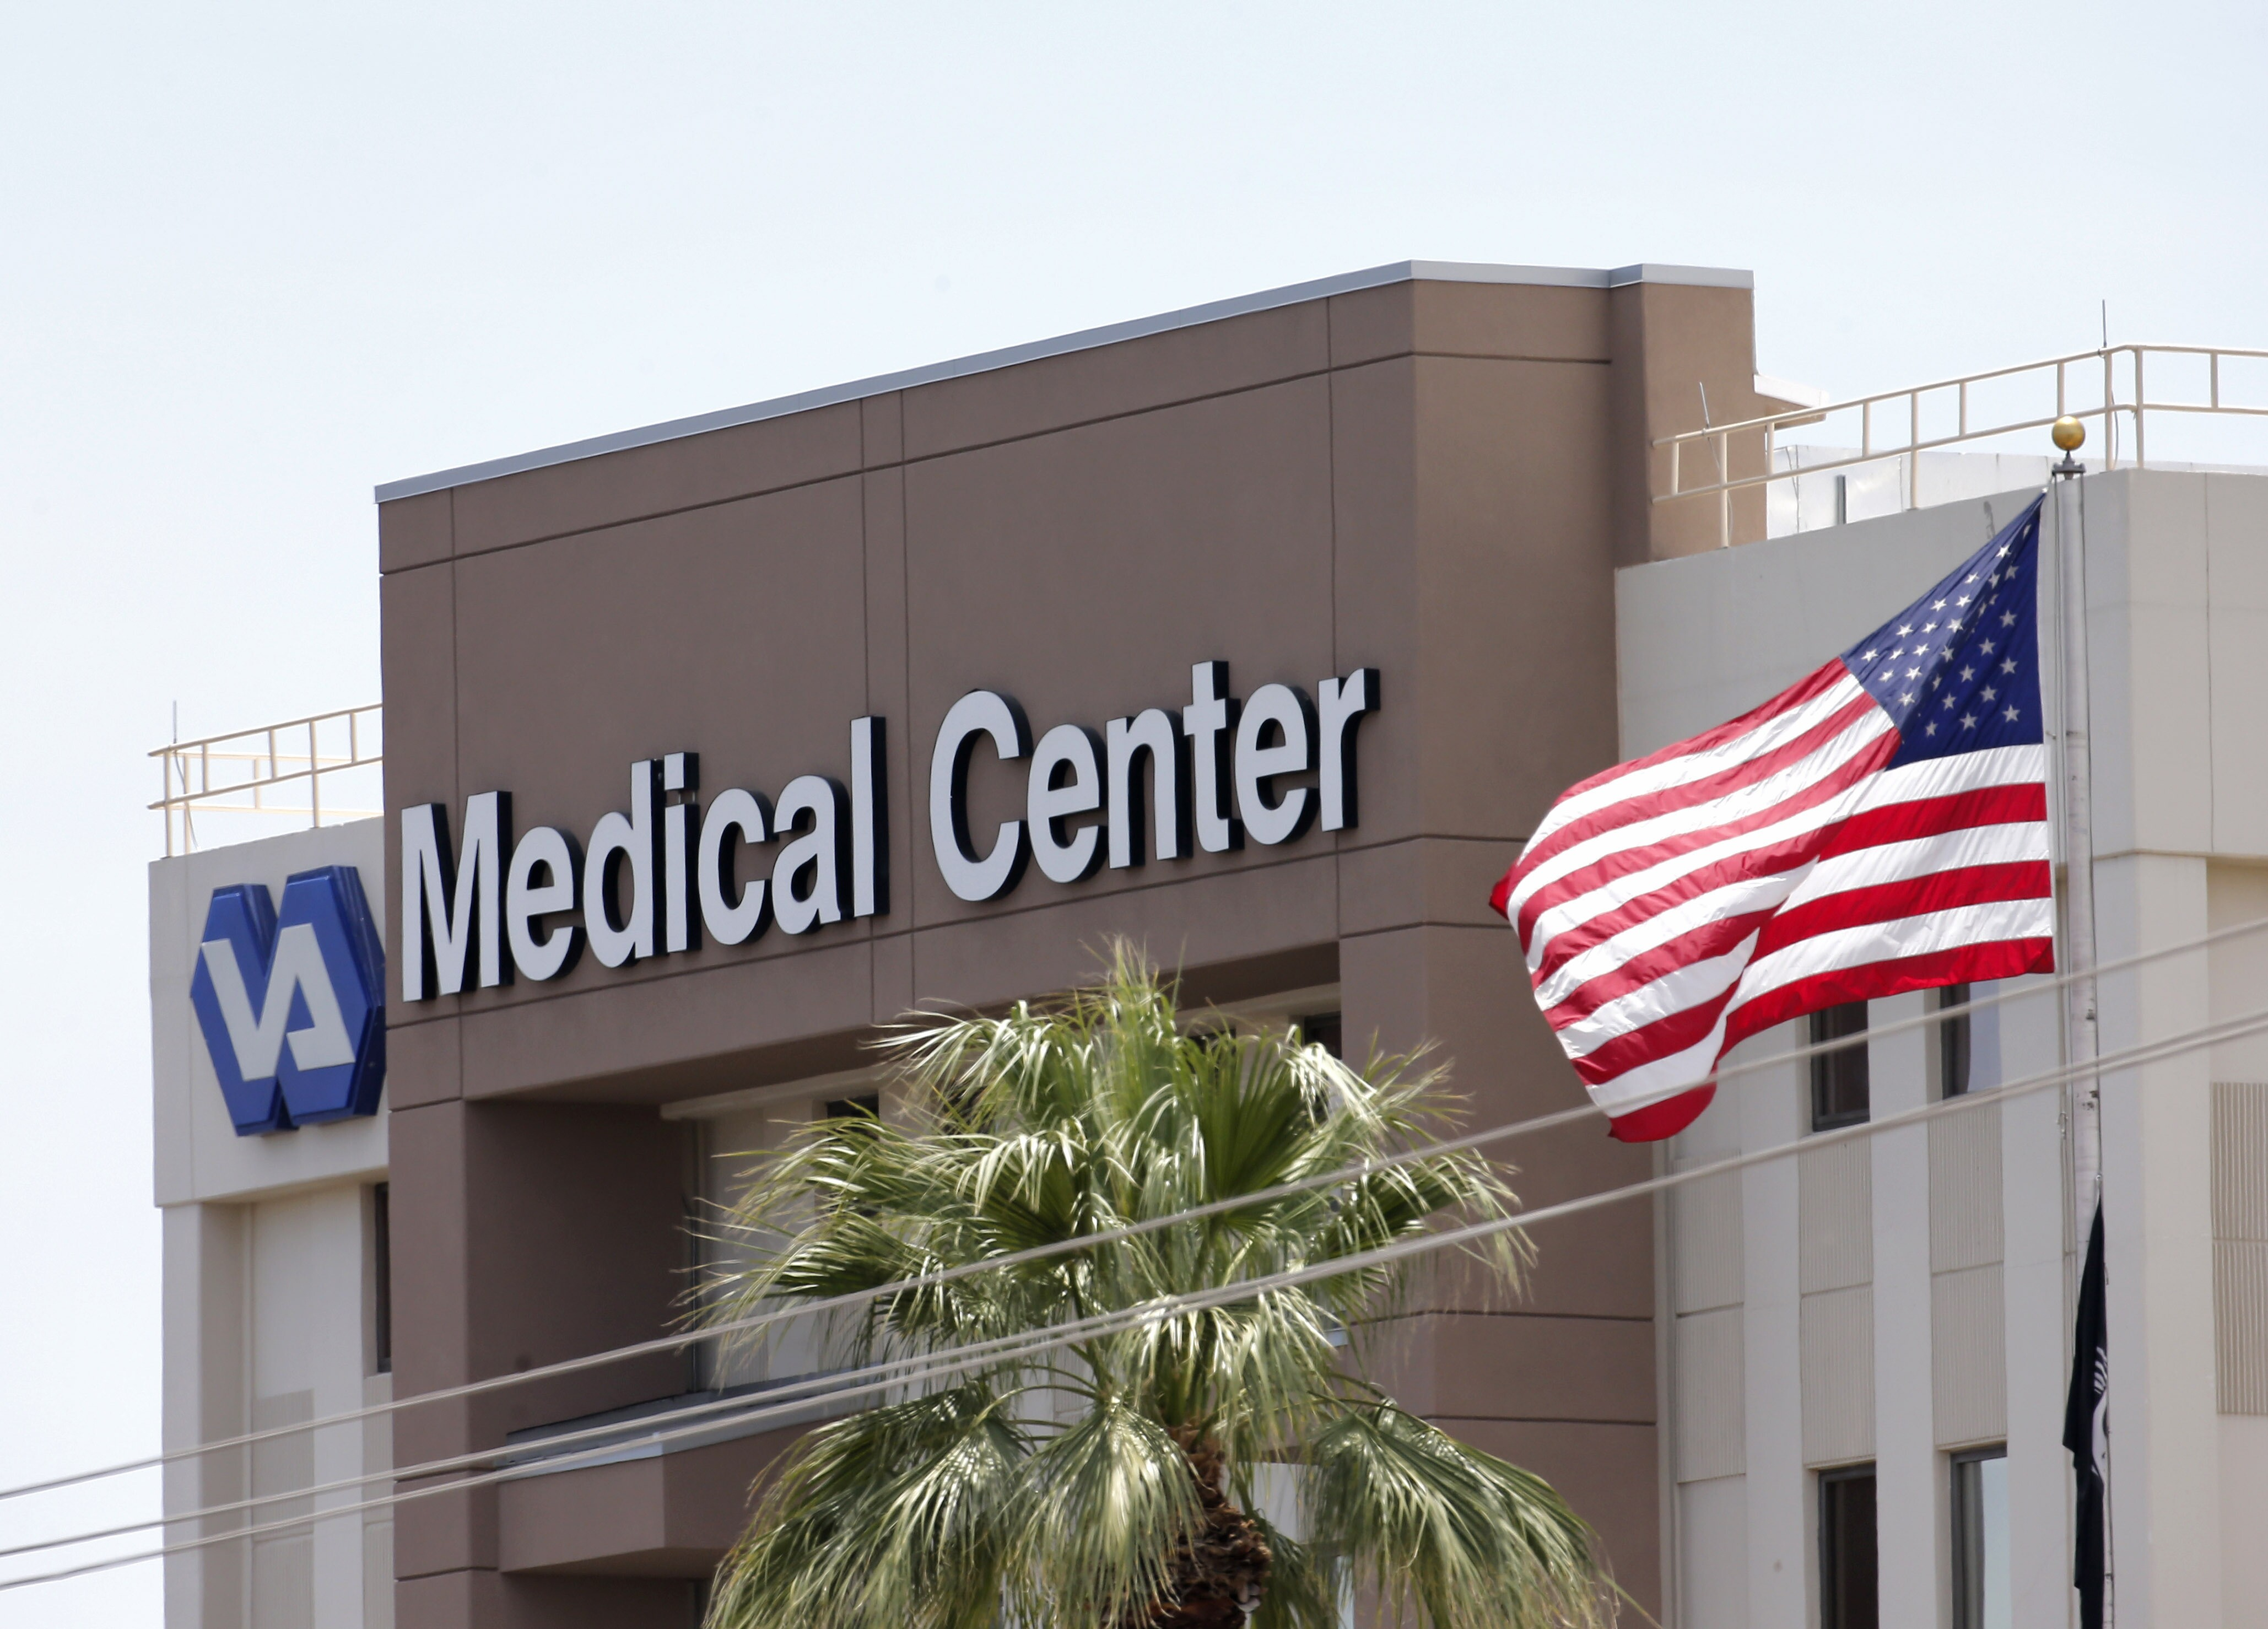 Official: FBI asked to investigate Veterans Affairs health care